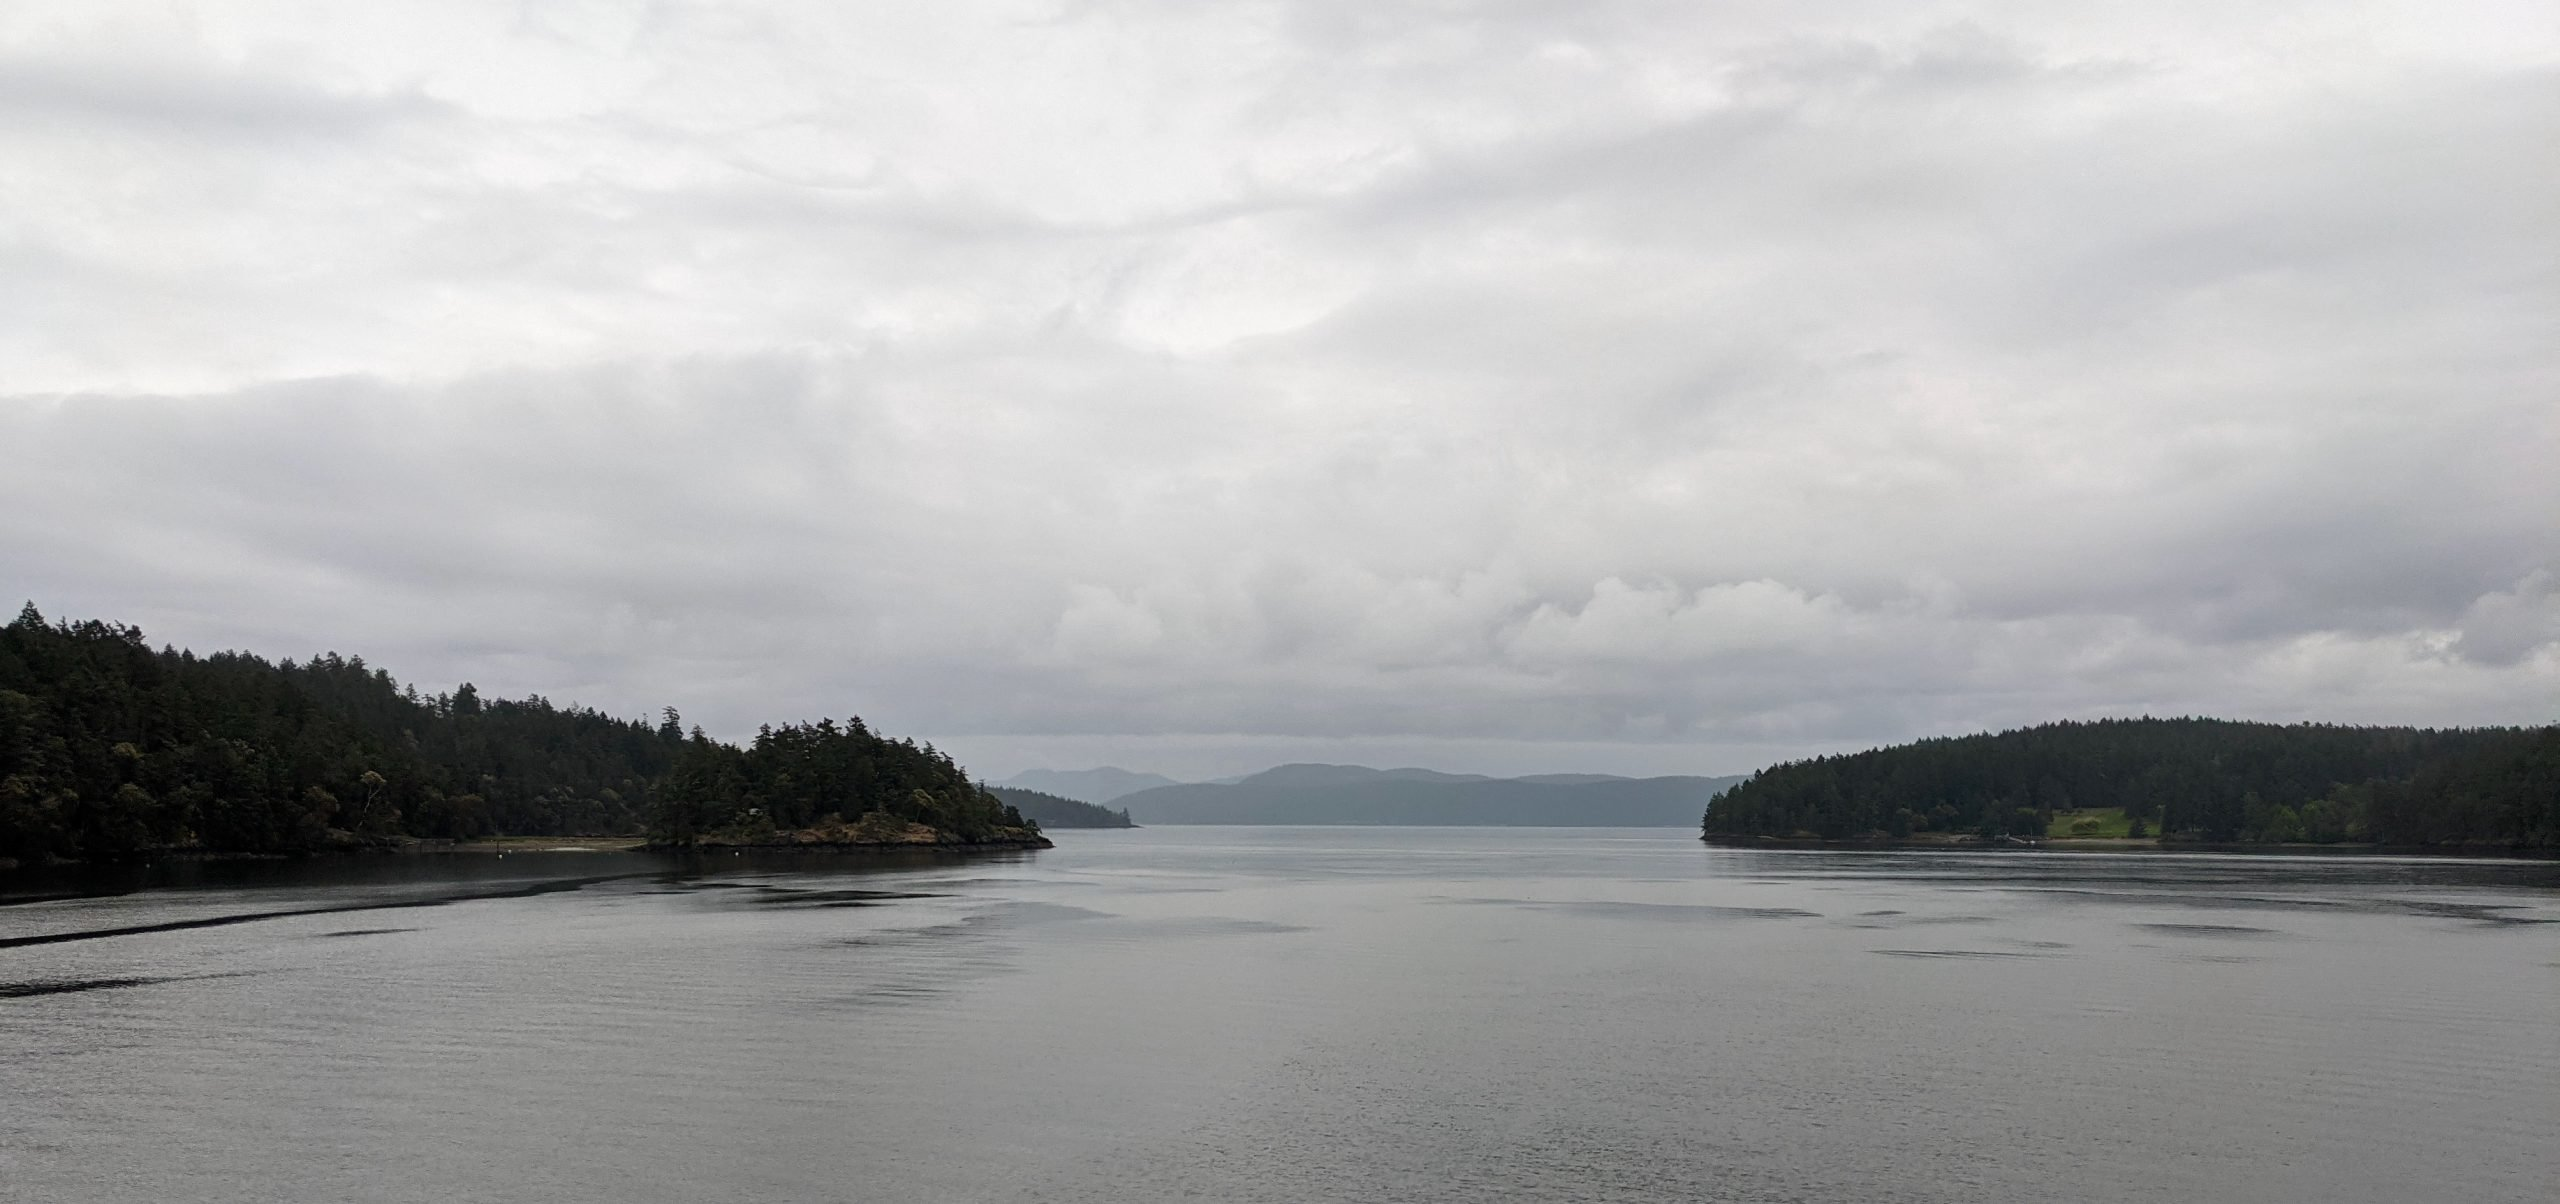 Photo of a wide, grey body of water narrowing to a channel in the center between two green tree-covered land masses. Behind them in the distance are more hills and a cloudy sky.